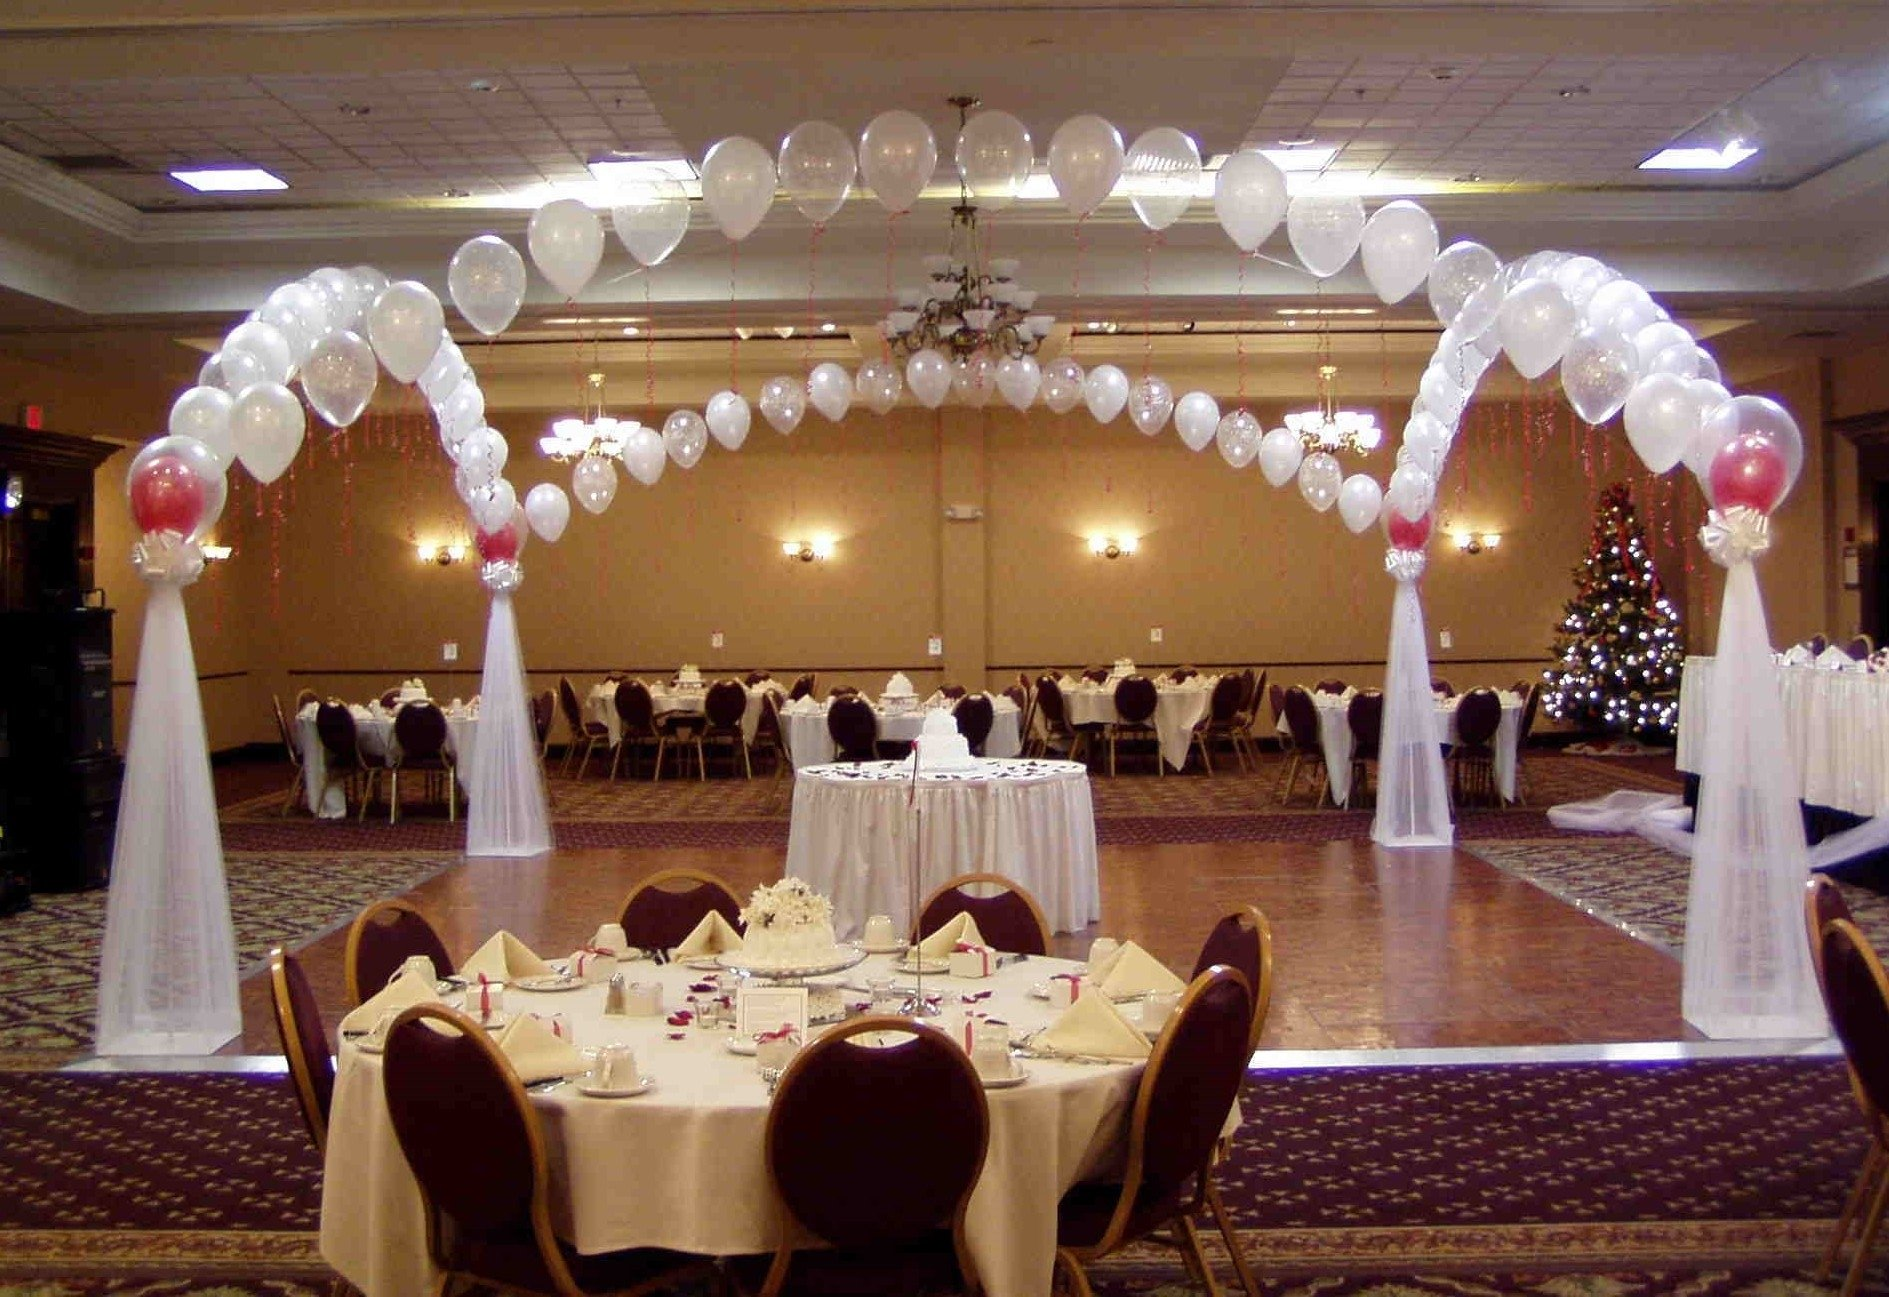 10 Attractive Reception Ideas On A Budget best wedding reception decor ideas on a budget sheriffjimonline 50th 2020